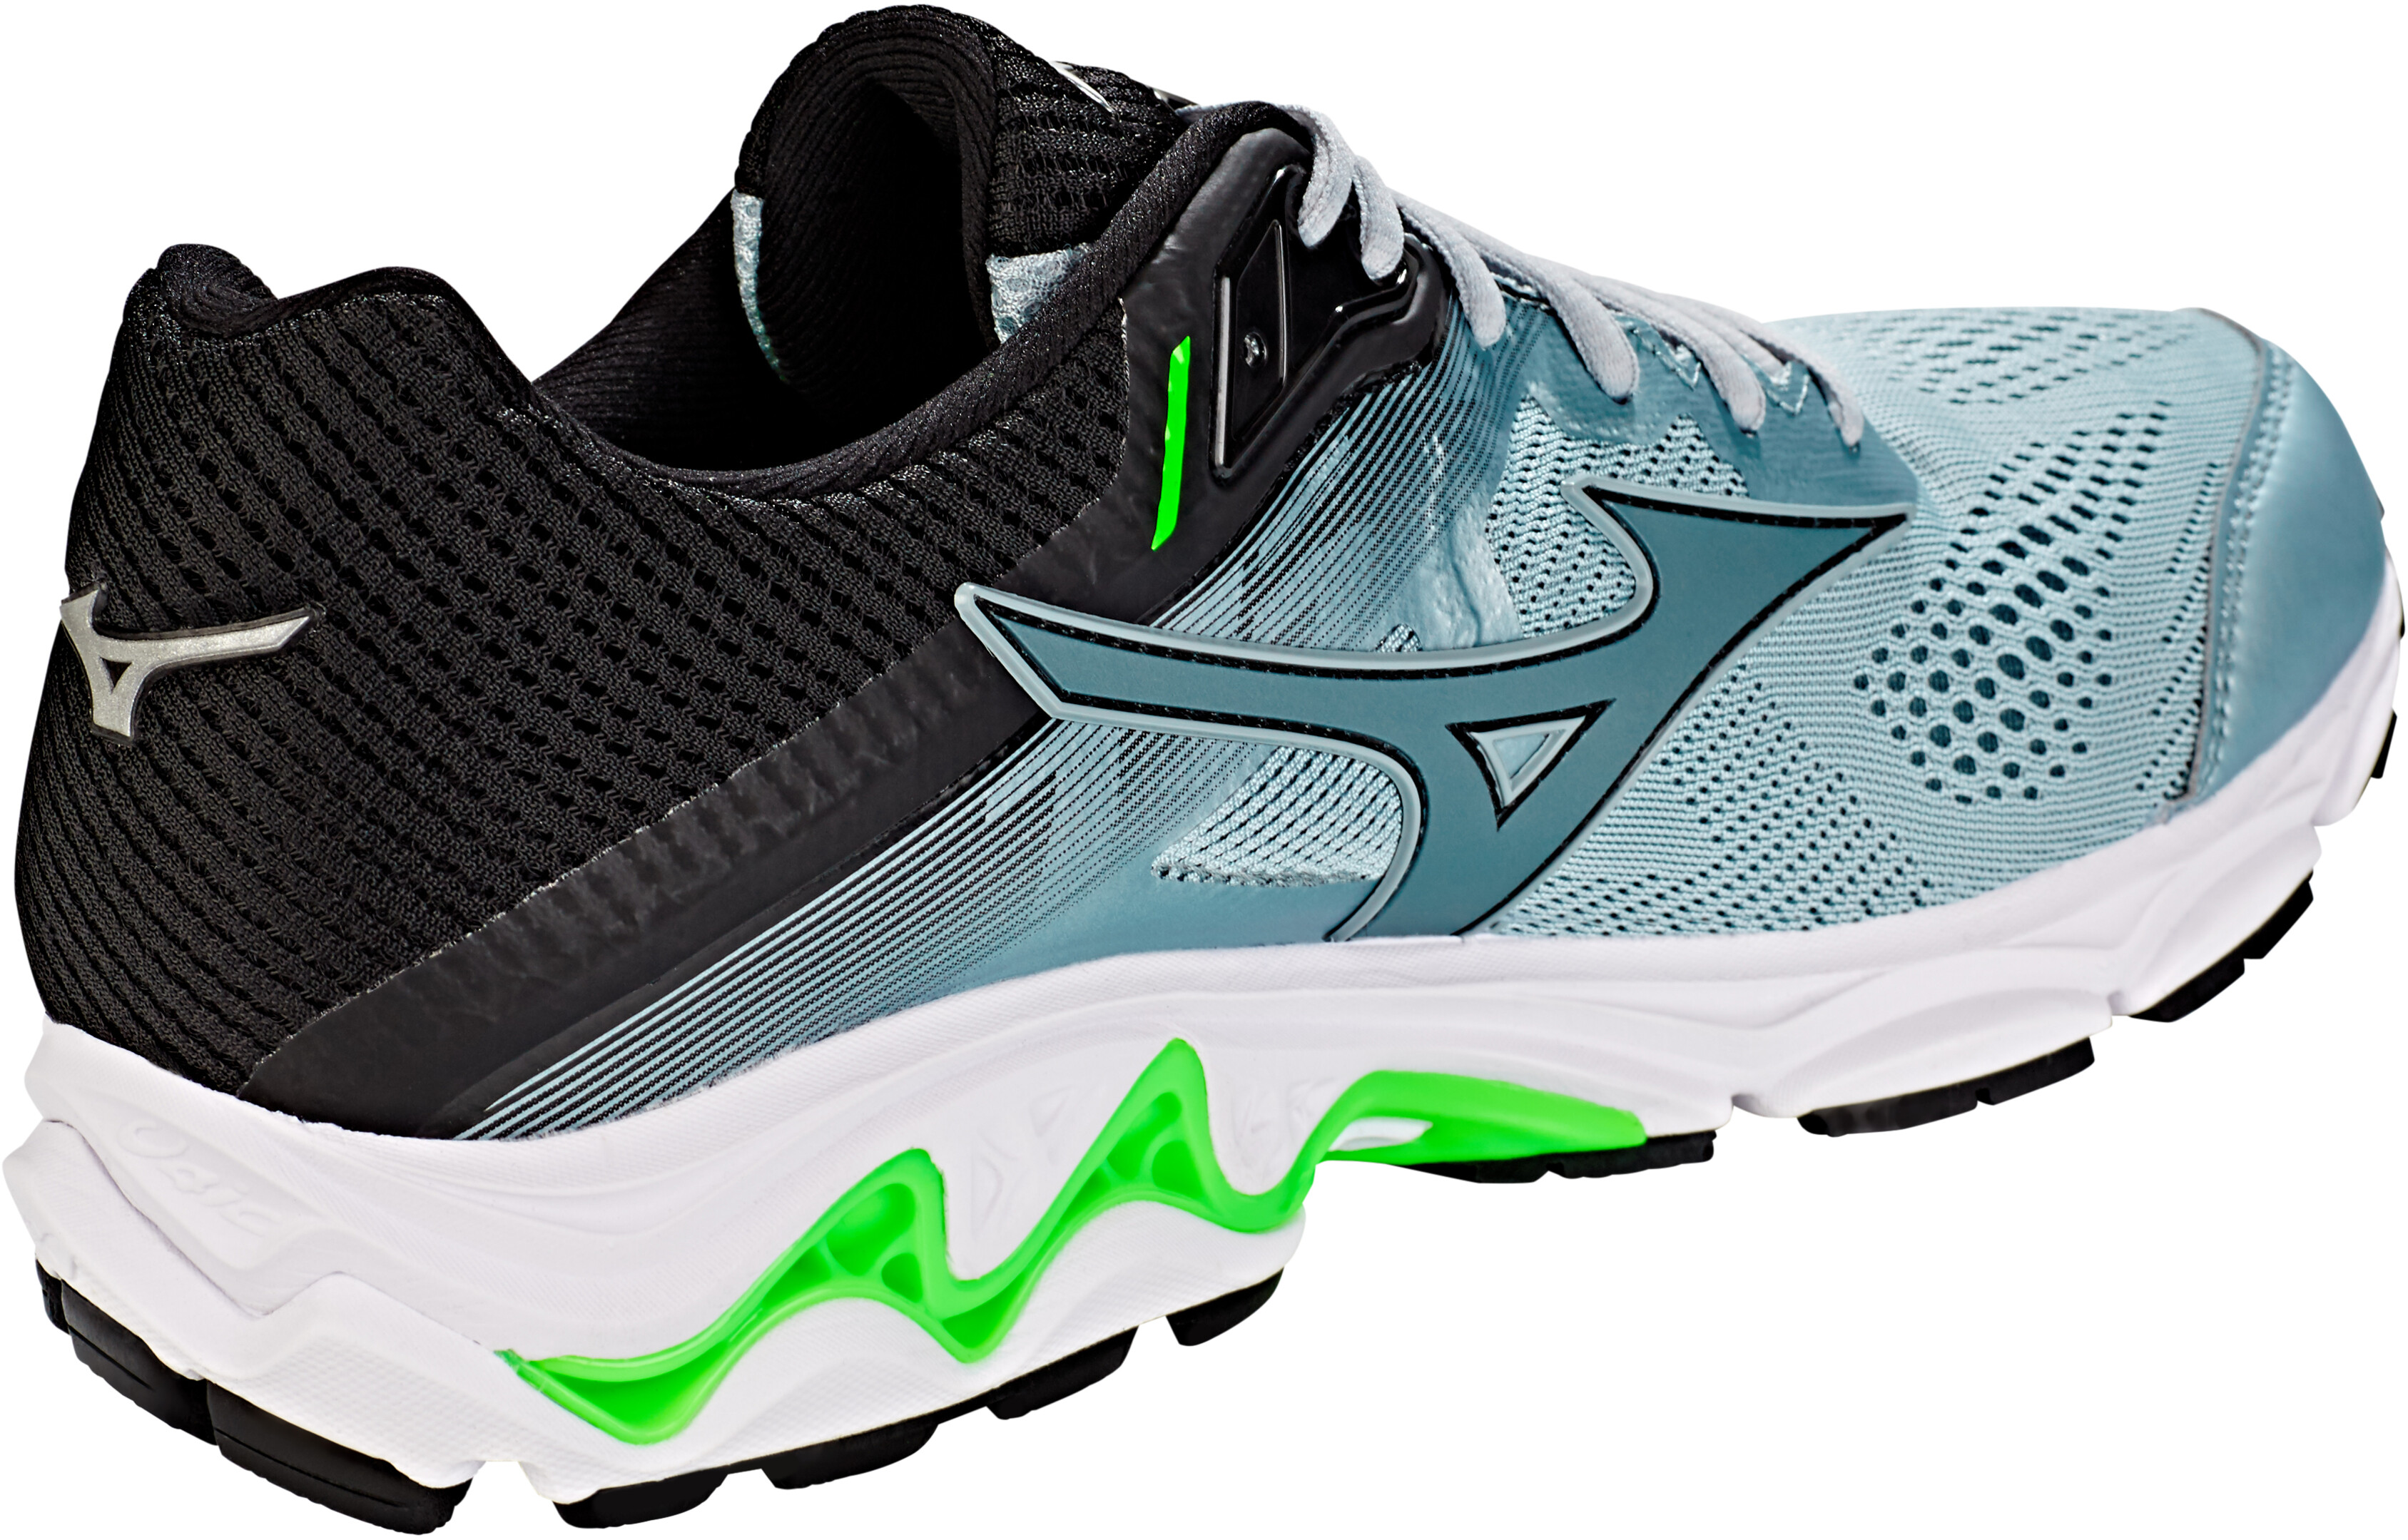 10839524154a Mizuno Wave Inspire 15 Running Shoes Men grey/green at Addnature.co.uk